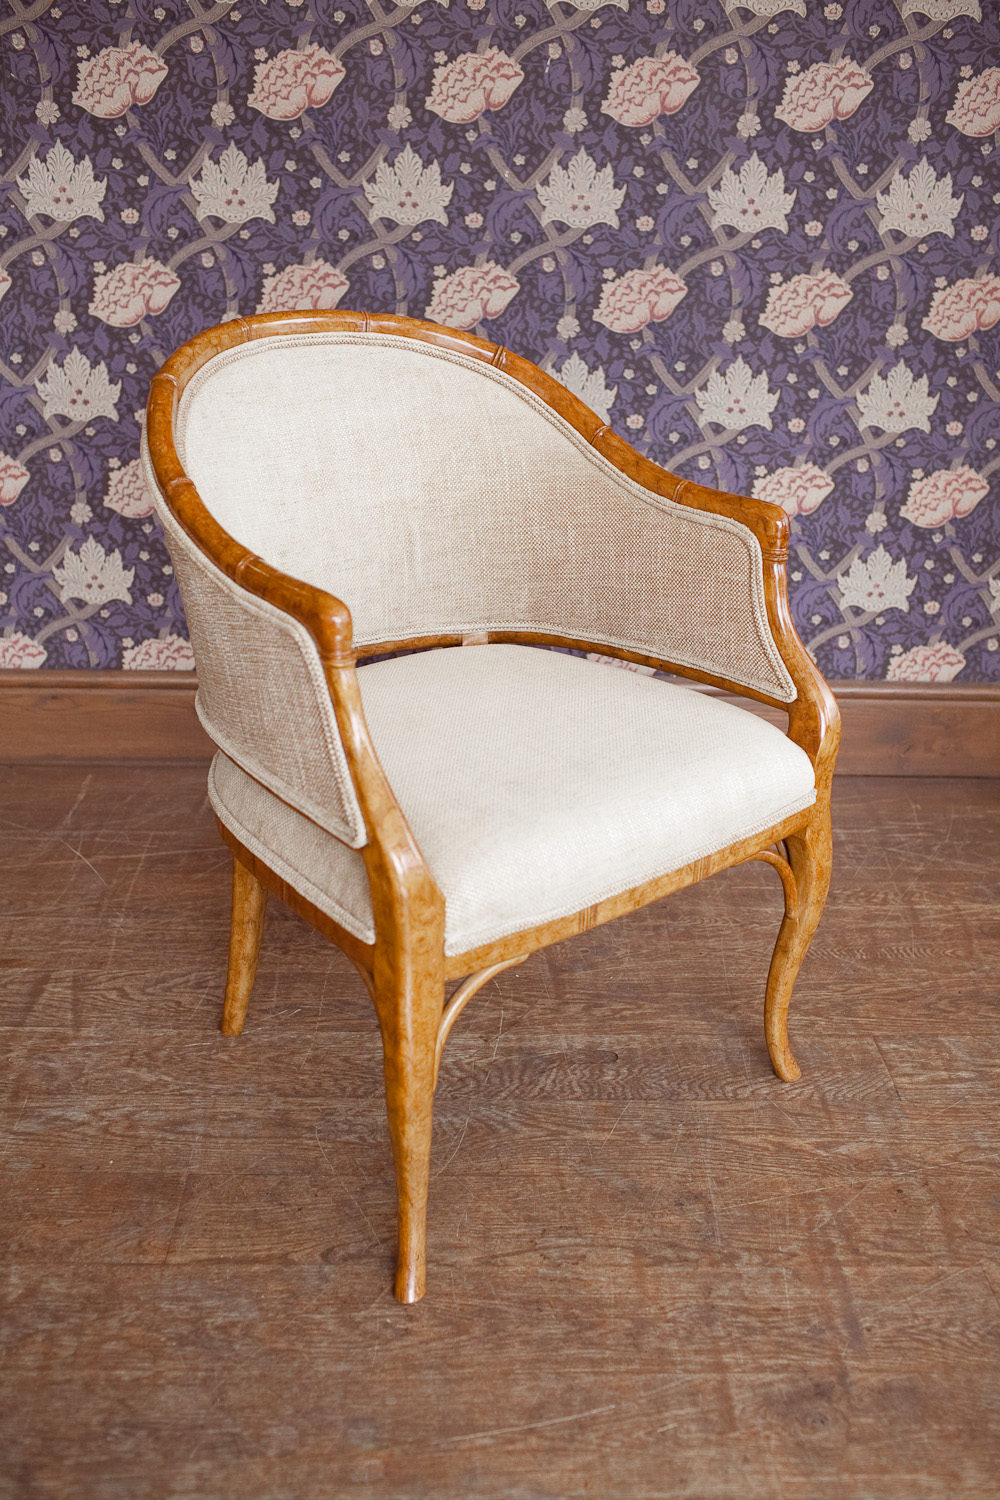 Antique tub chairs - A Faux Bamboo Upholstered Tub Chair Vintage